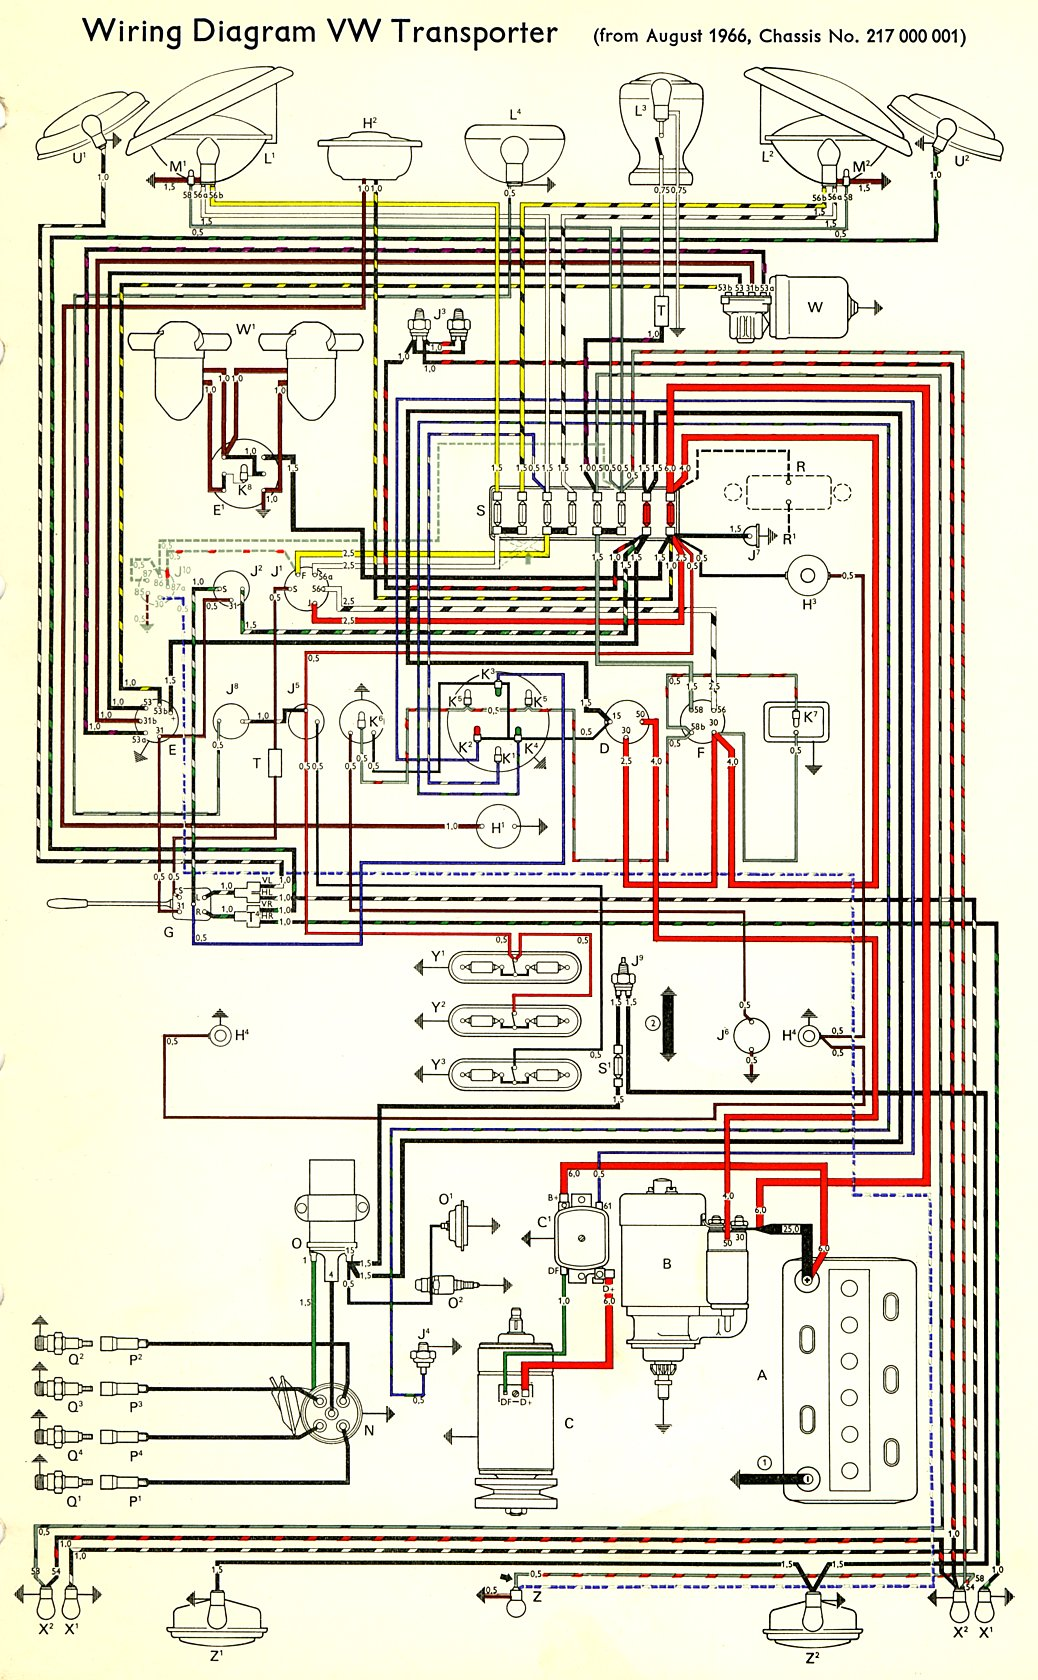 bus_67 vw bus wiring diagram 1965 vw bus wiring diagram \u2022 wiring diagrams 1965 vw bus wiring harness at alyssarenee.co